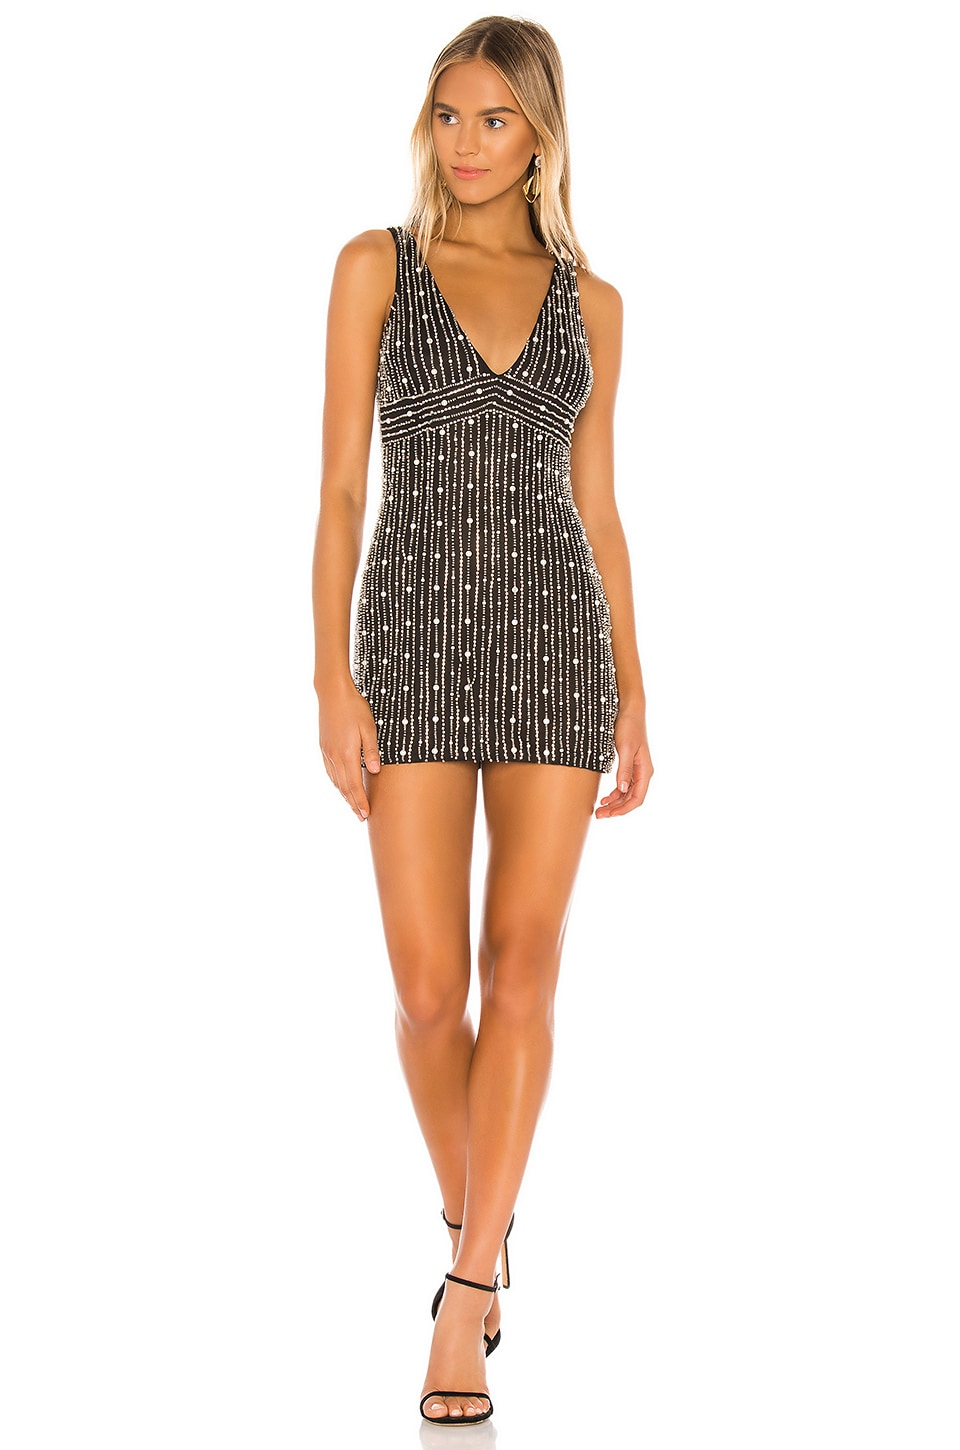 h:ours Opulence Mini Dress in Black